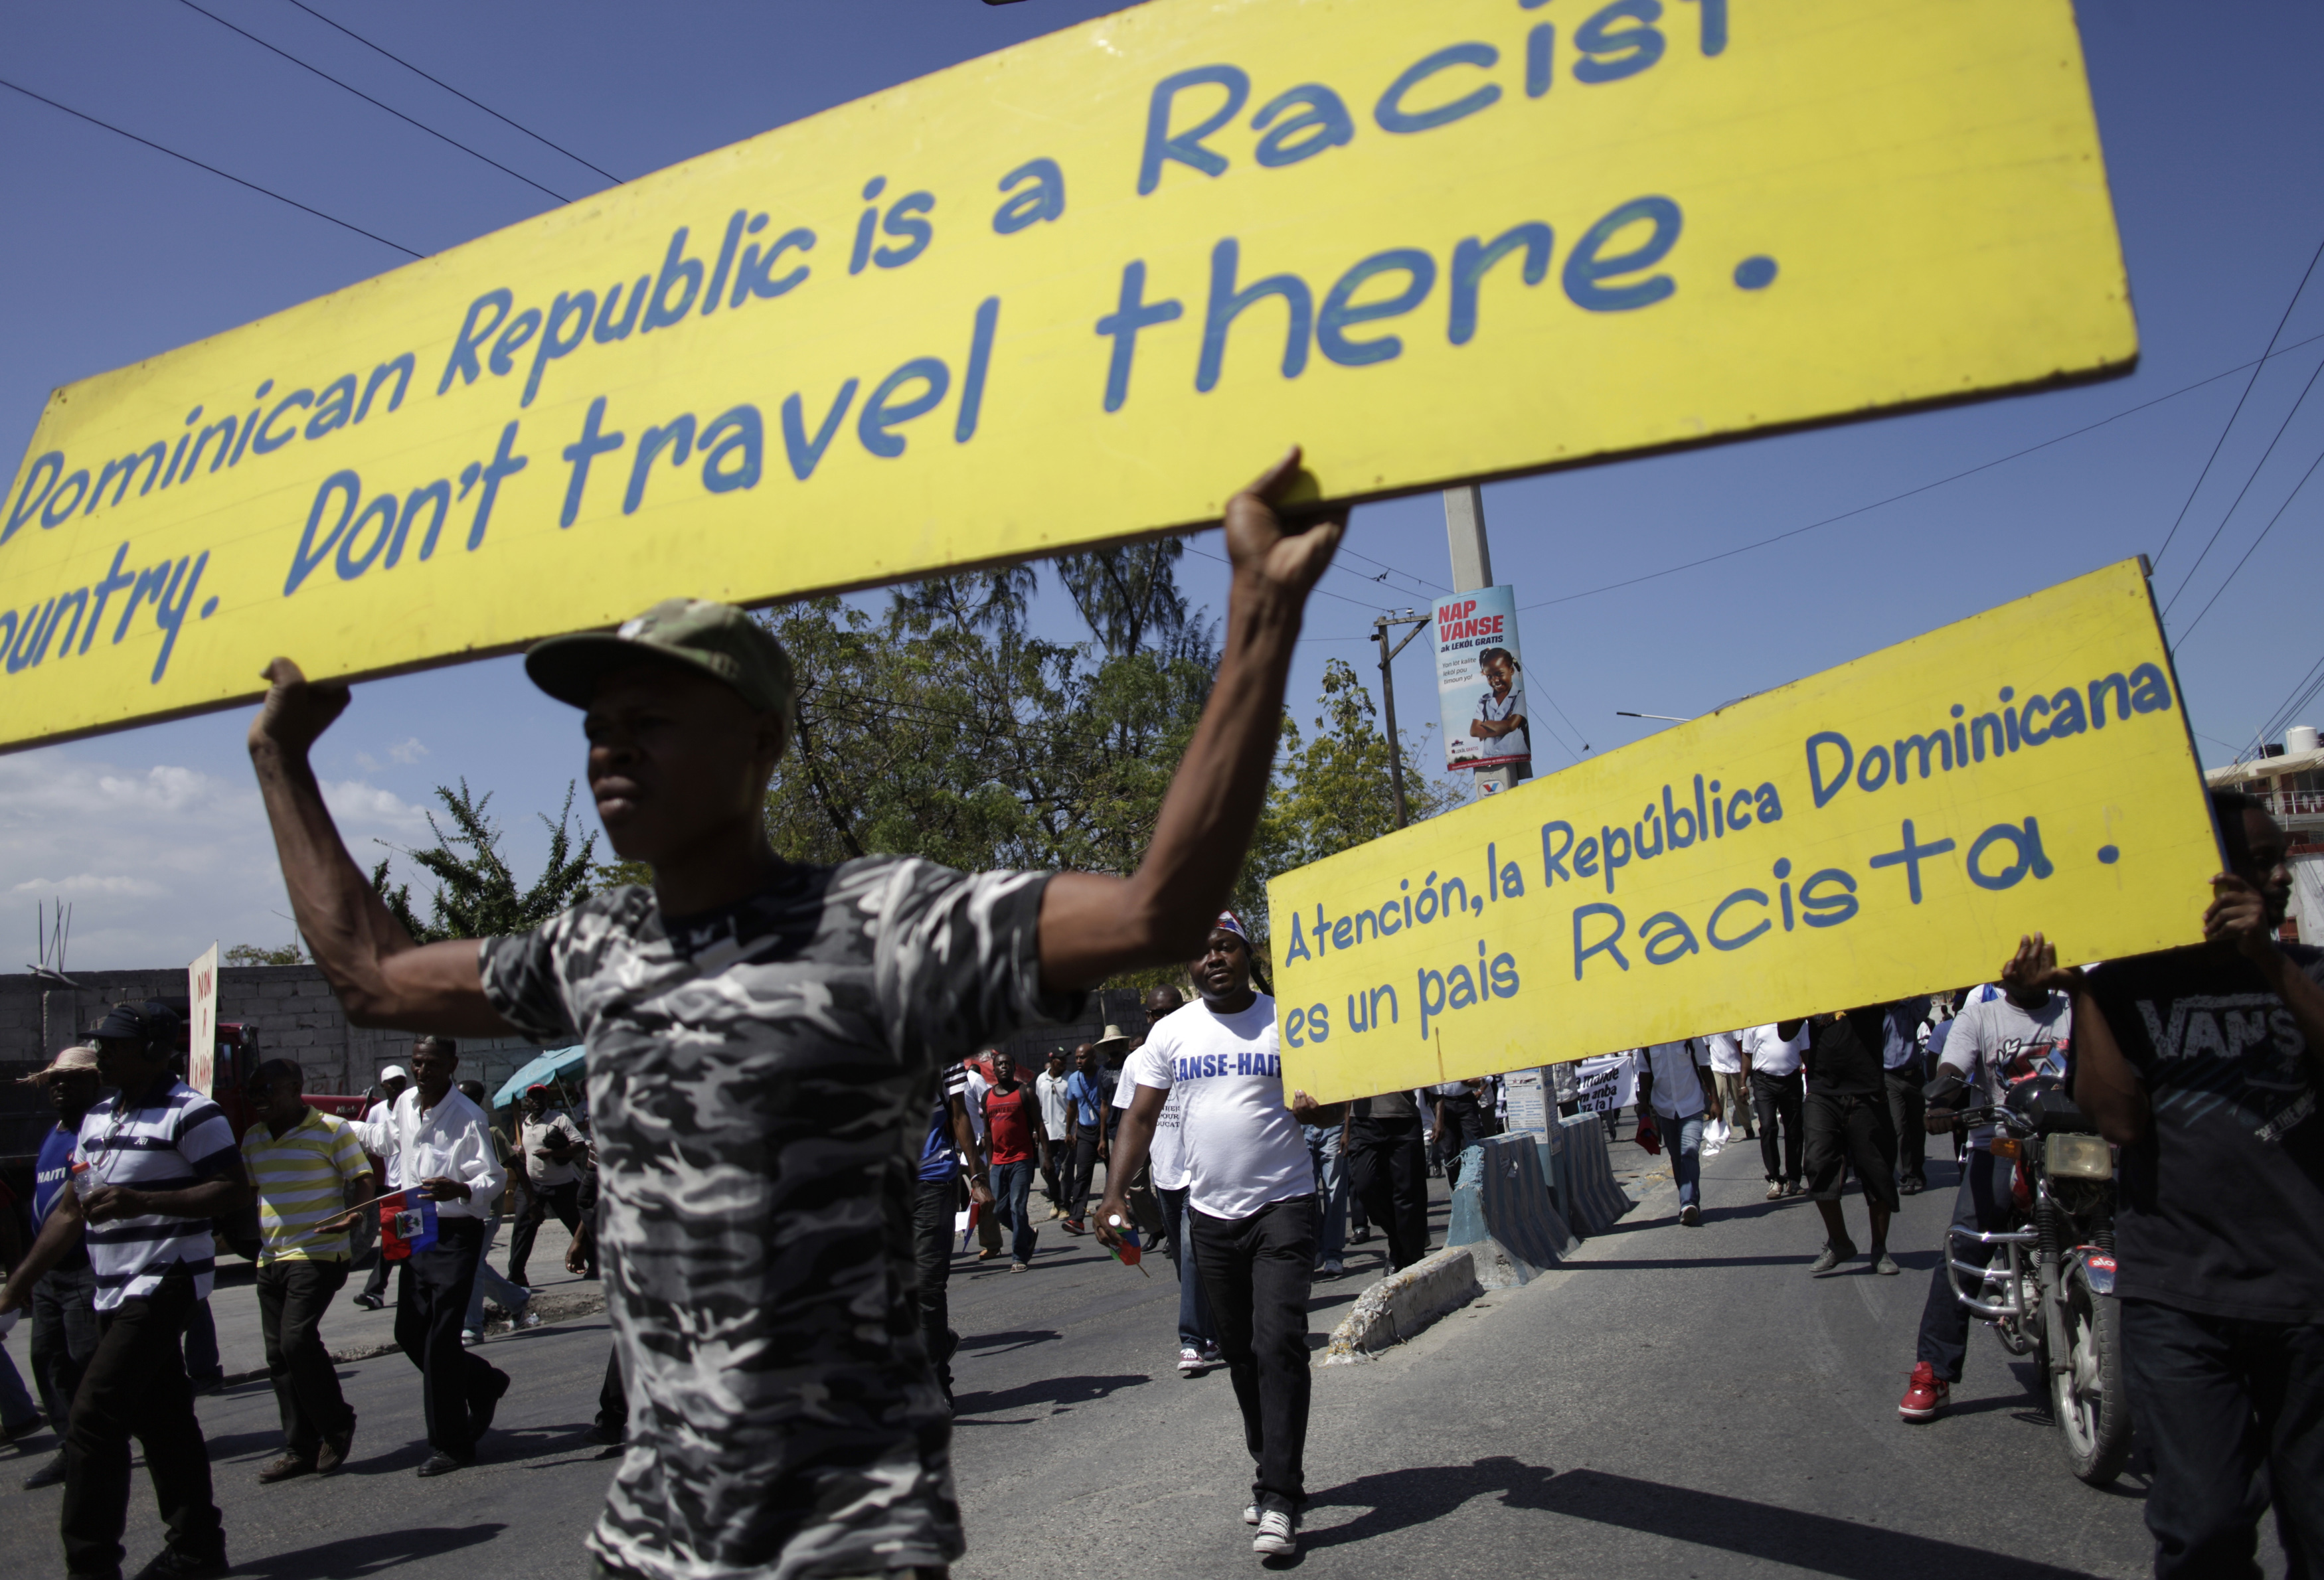 Protesters holds signs while marching on a street in Port-au-Prince